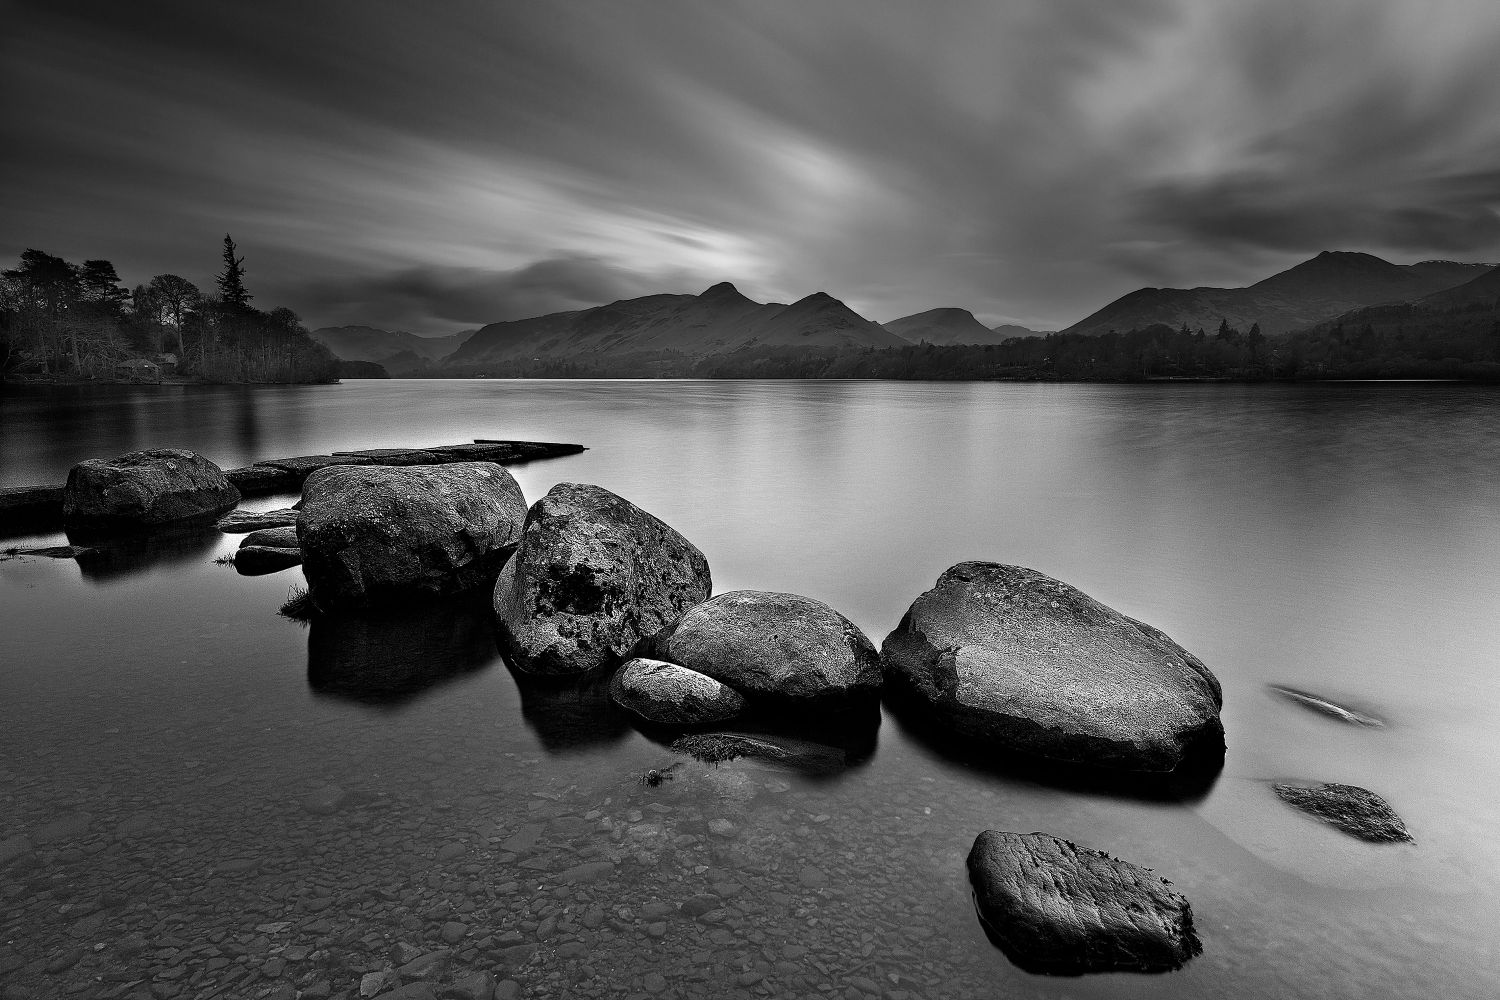 Last Rays of Light over Isthmus Bay Derwentwater in Black and White